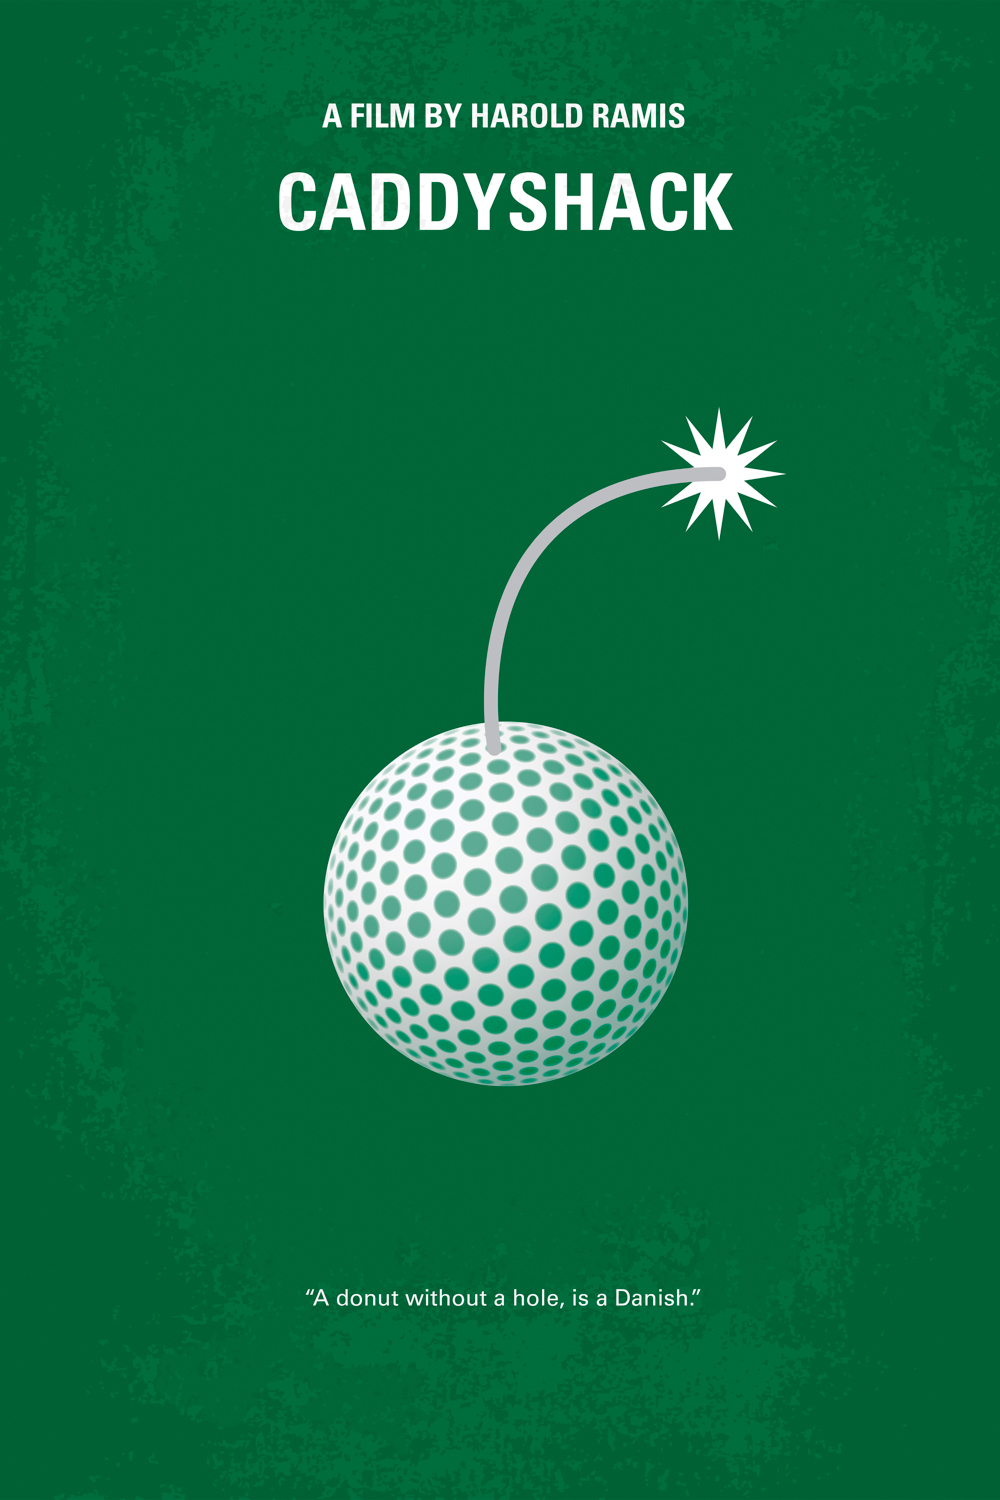 a minimal style movie poster for Caddyshack with a golf ball with a fuse on a green background